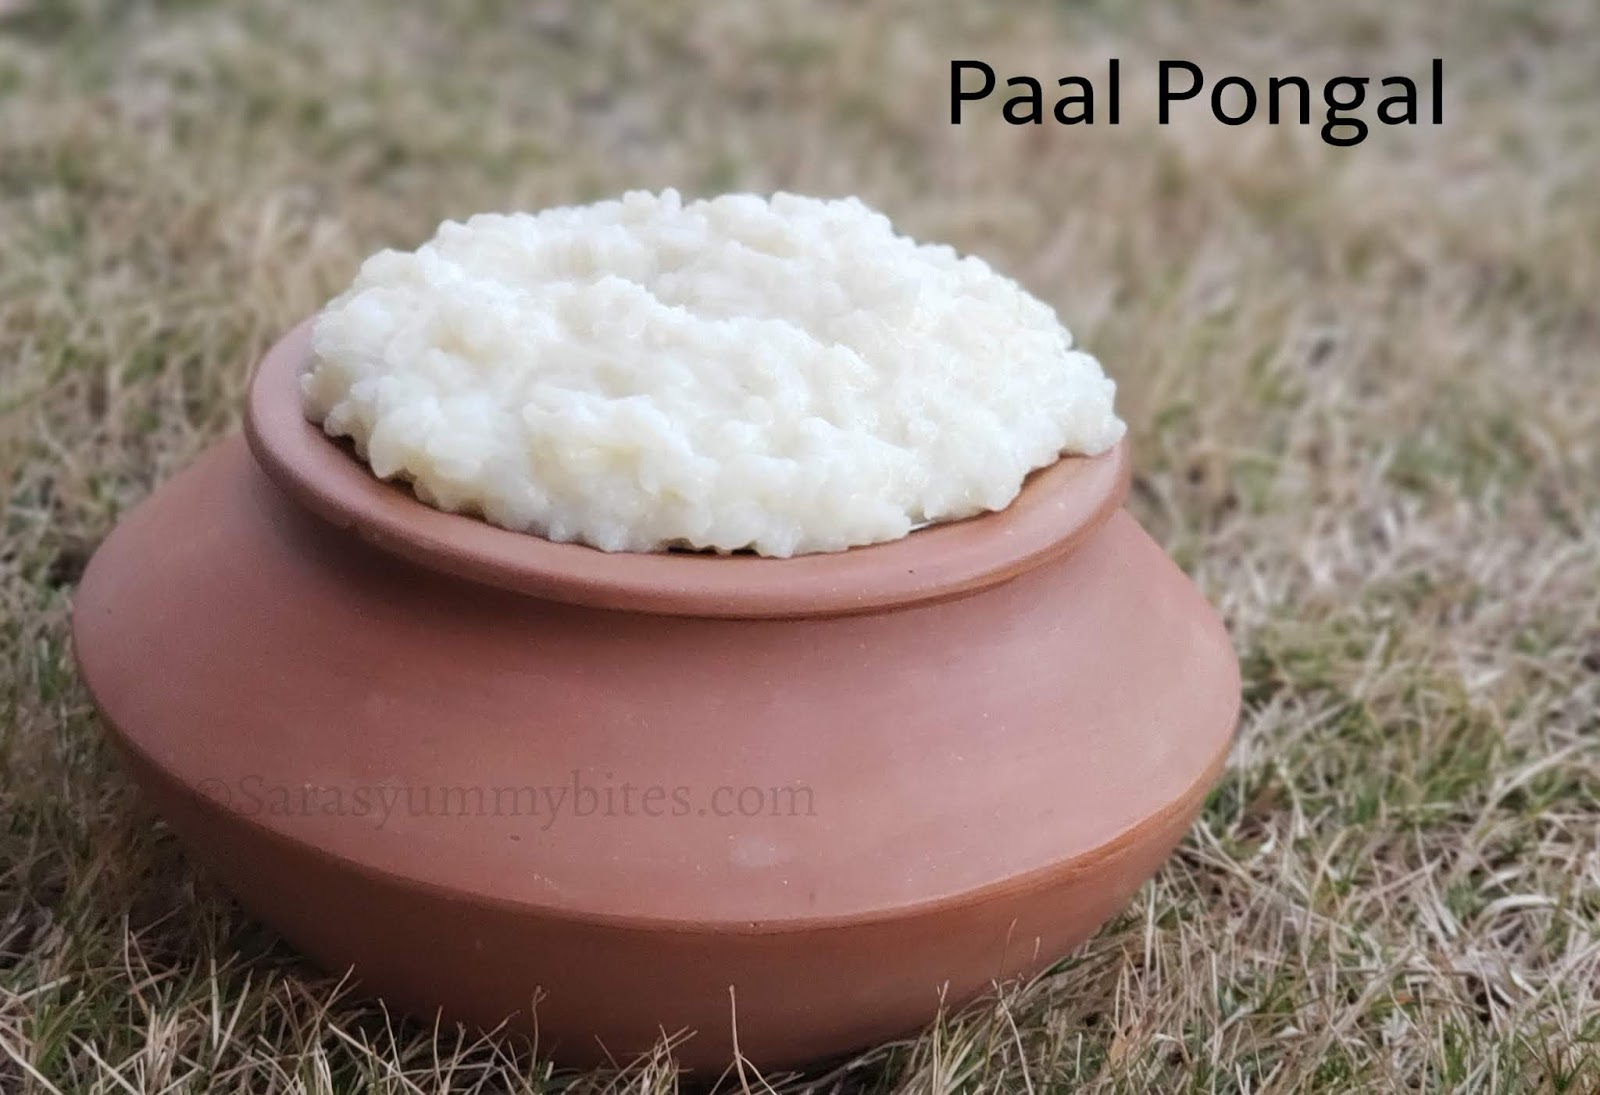 Paal Pongal